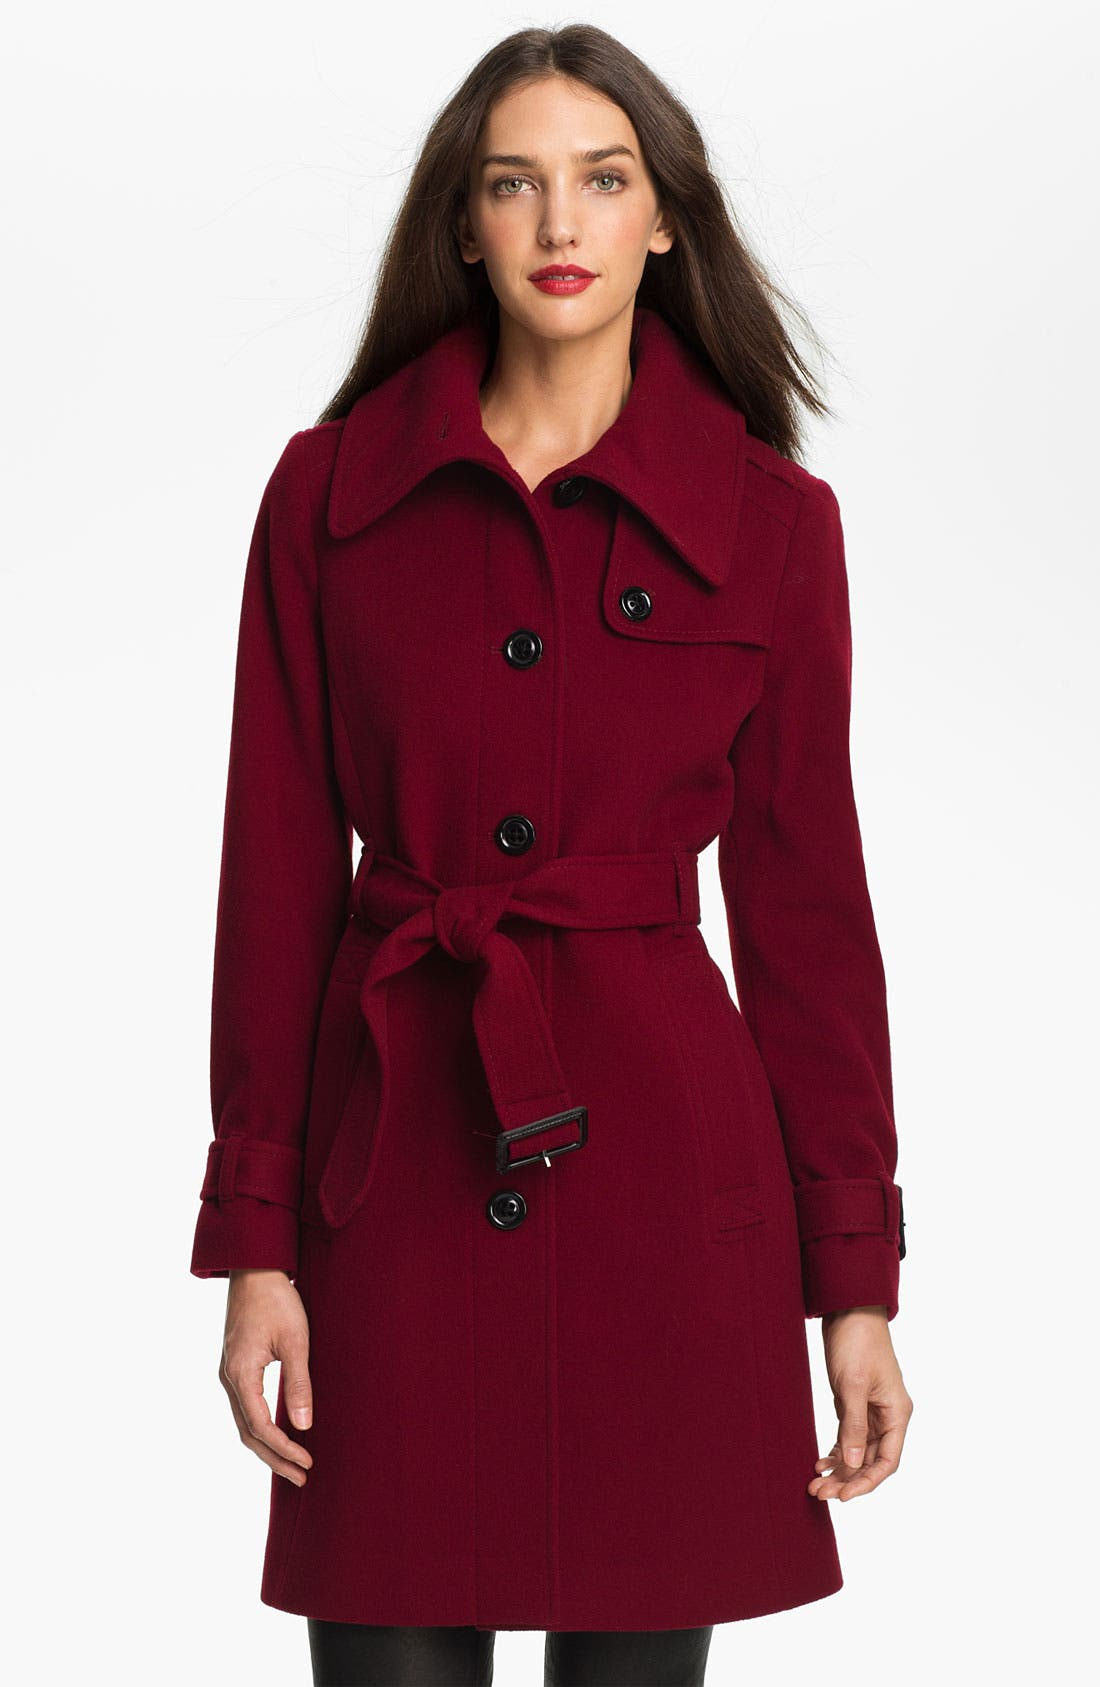 Main Image - London Fog Envelope Collar Wool Blend Coat (Online Exclusive)